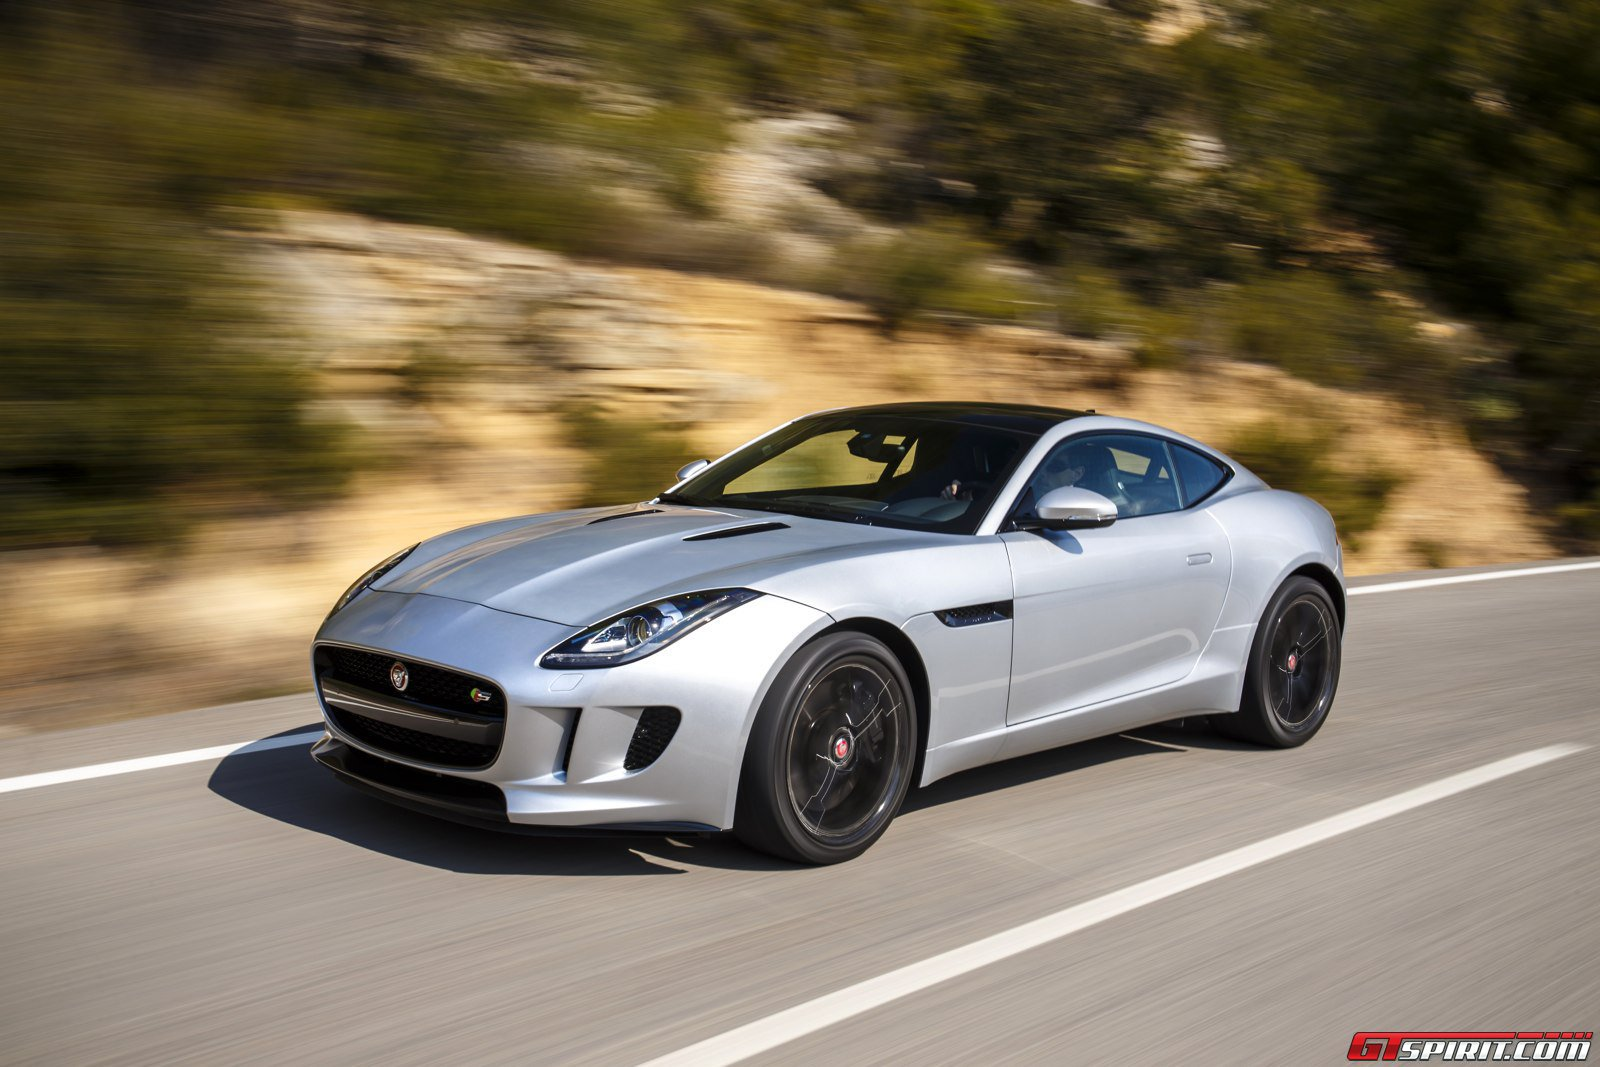 2014 jaguar f type v6s coupe vs f type r coupe review gtspirit. Cars Review. Best American Auto & Cars Review